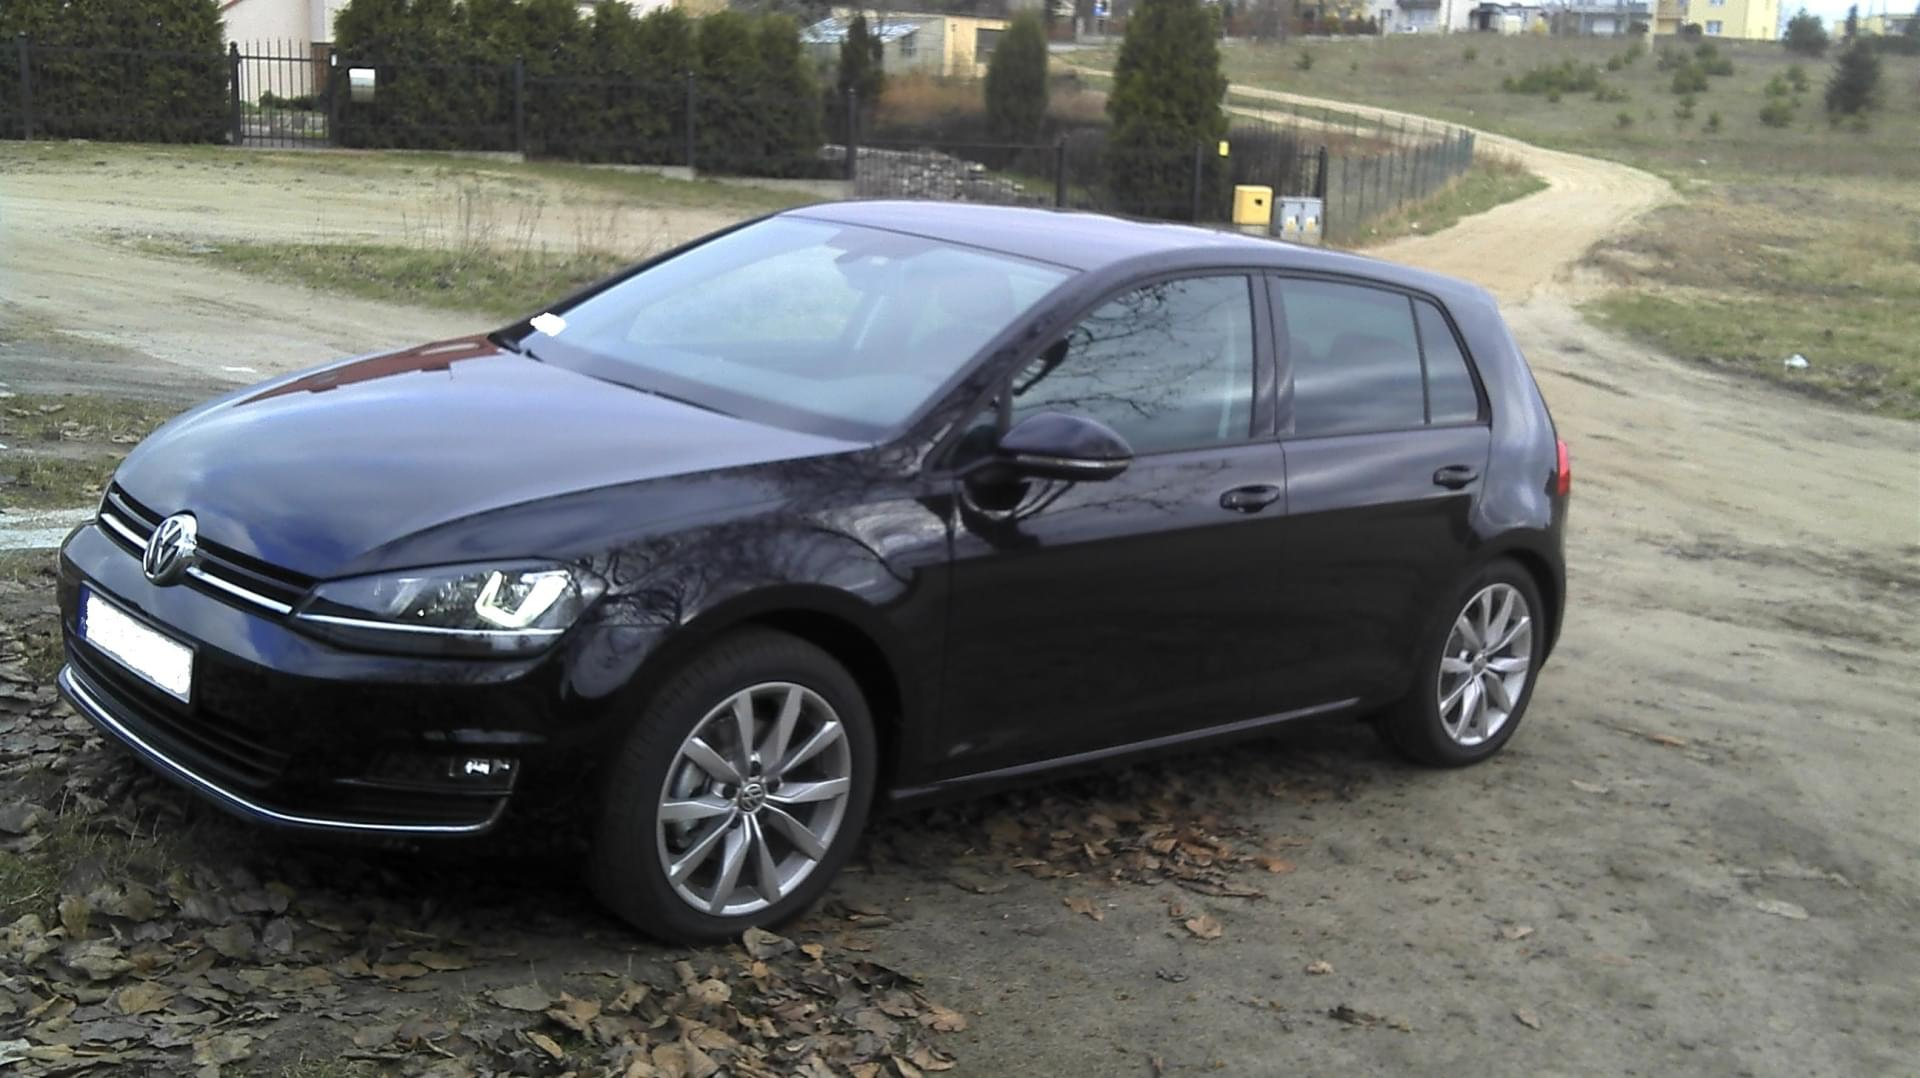 forum temat vw golf 7 1 4 tsi 122km 2014 highline czarna per a. Black Bedroom Furniture Sets. Home Design Ideas